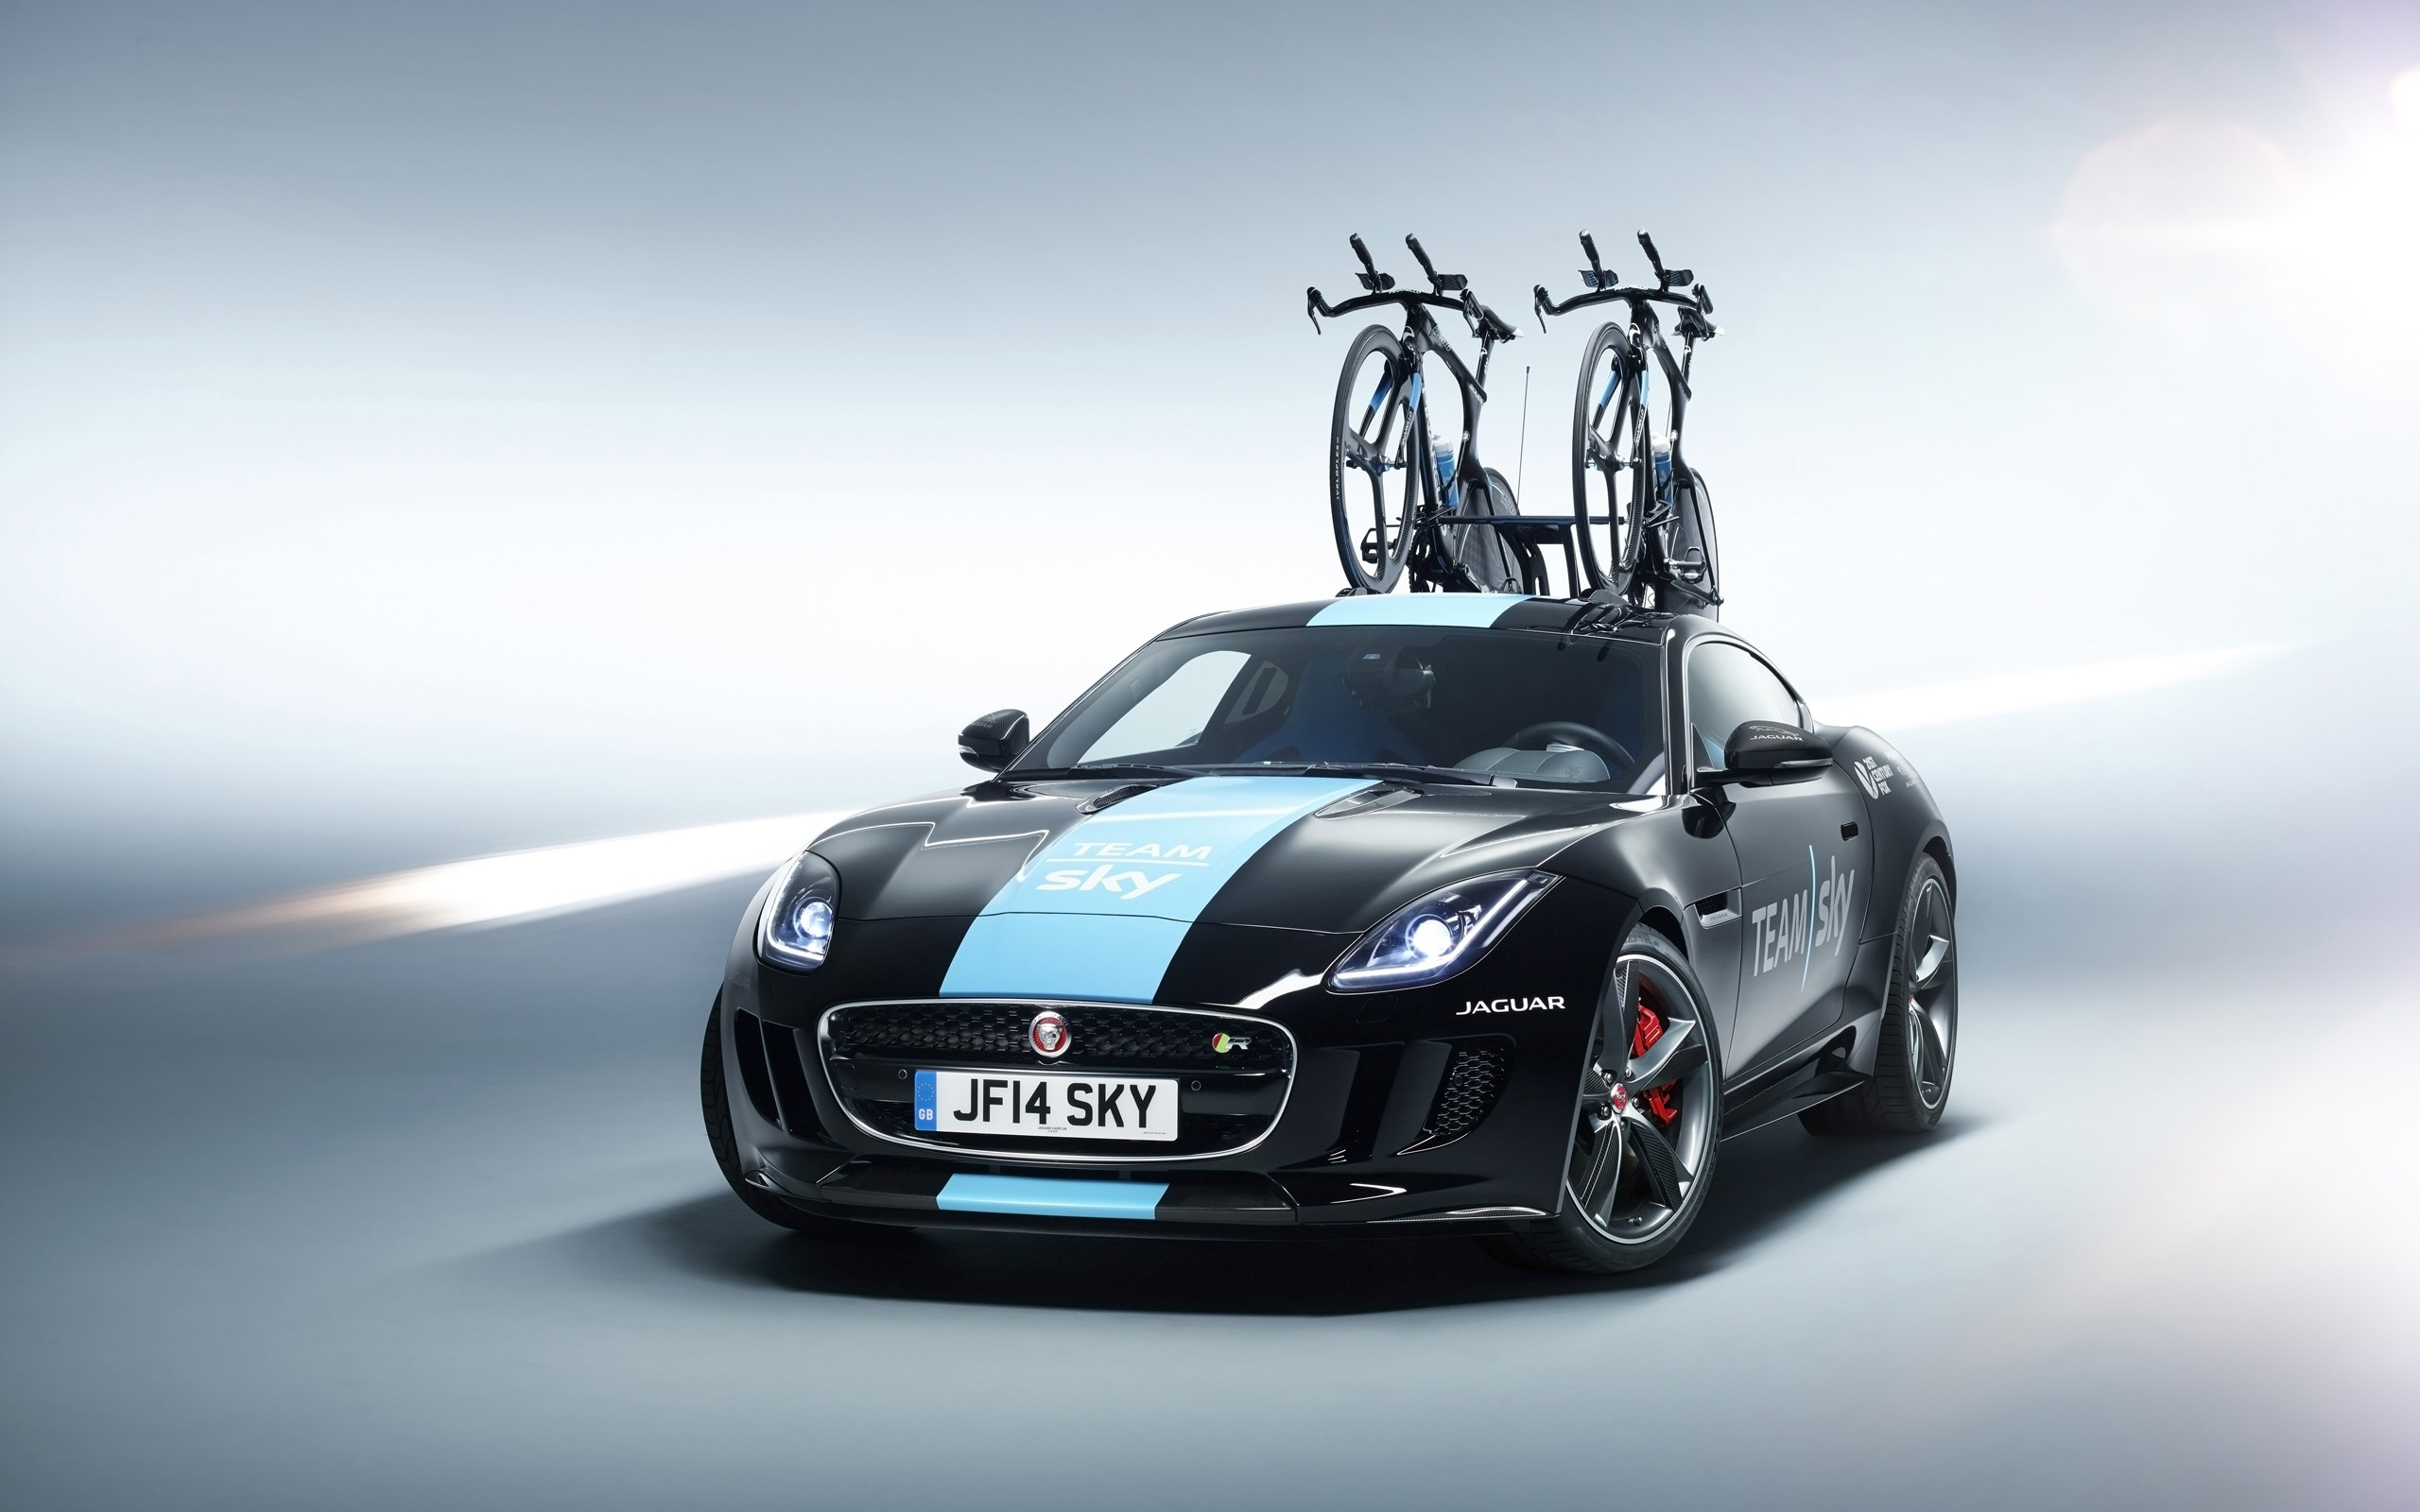 Jaguar F Type Coupe Tour De France 2014 Wallpapers In Jpg Format For